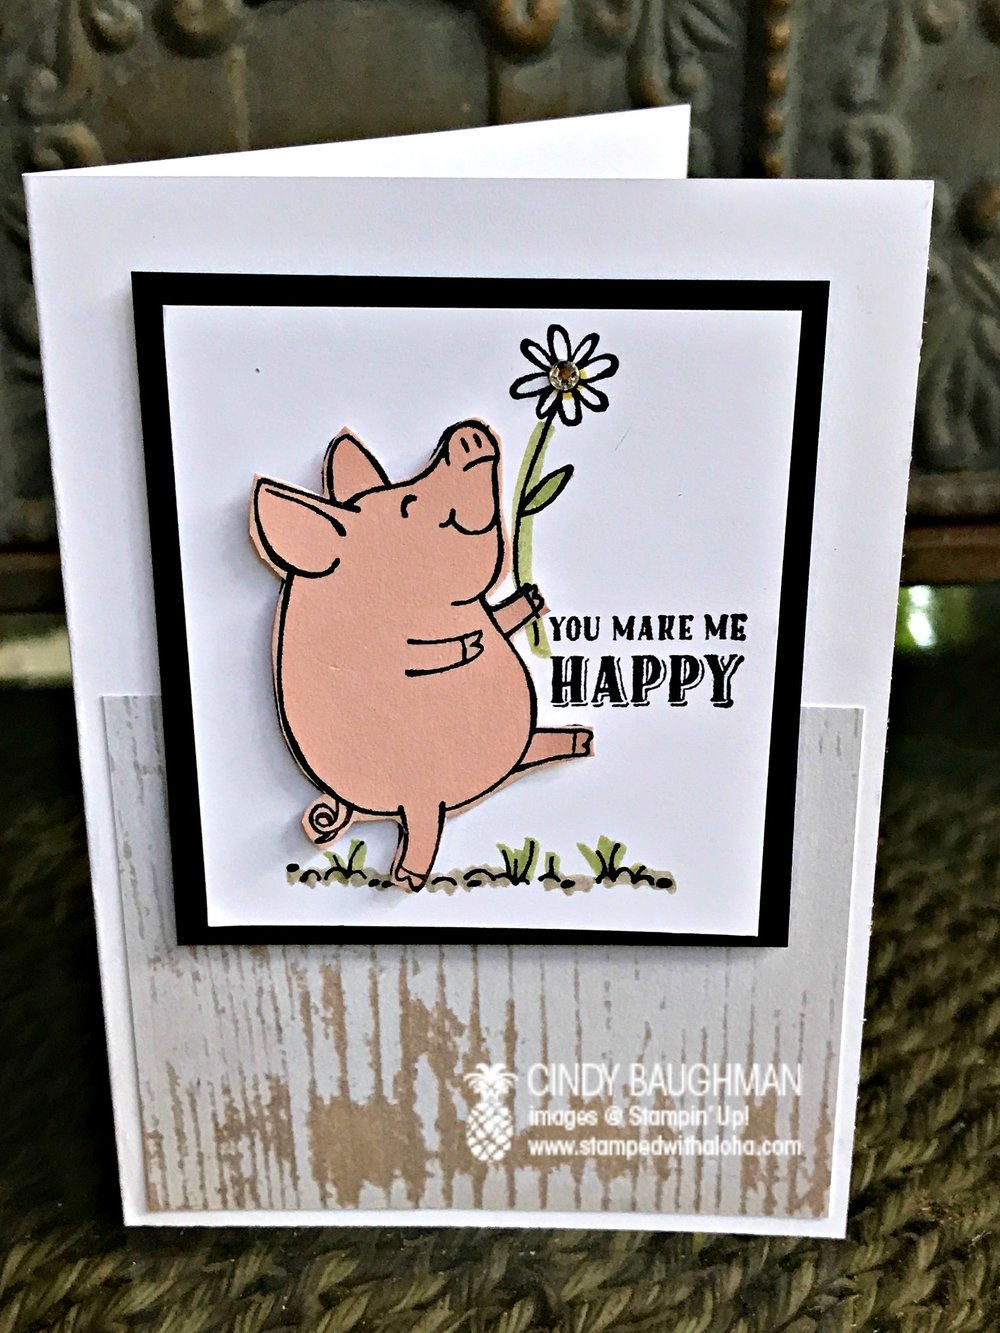 This Little Happy Piggy - www.stampedwithaloha.com